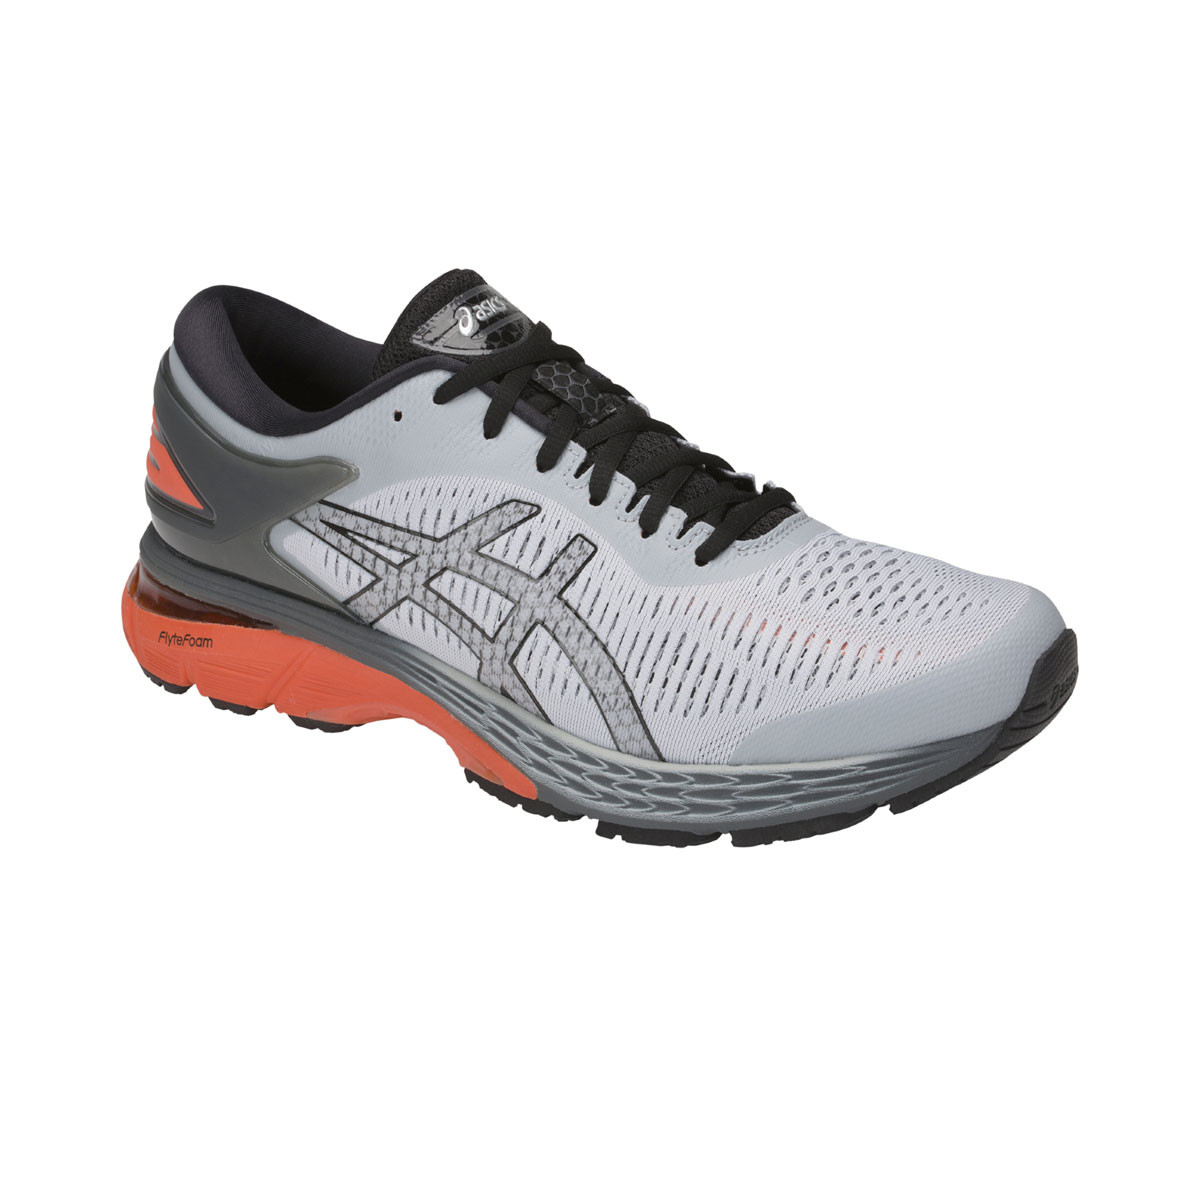 Chaussure de running Gel Kayano 25 - Mid Grey/Nova Orange 0